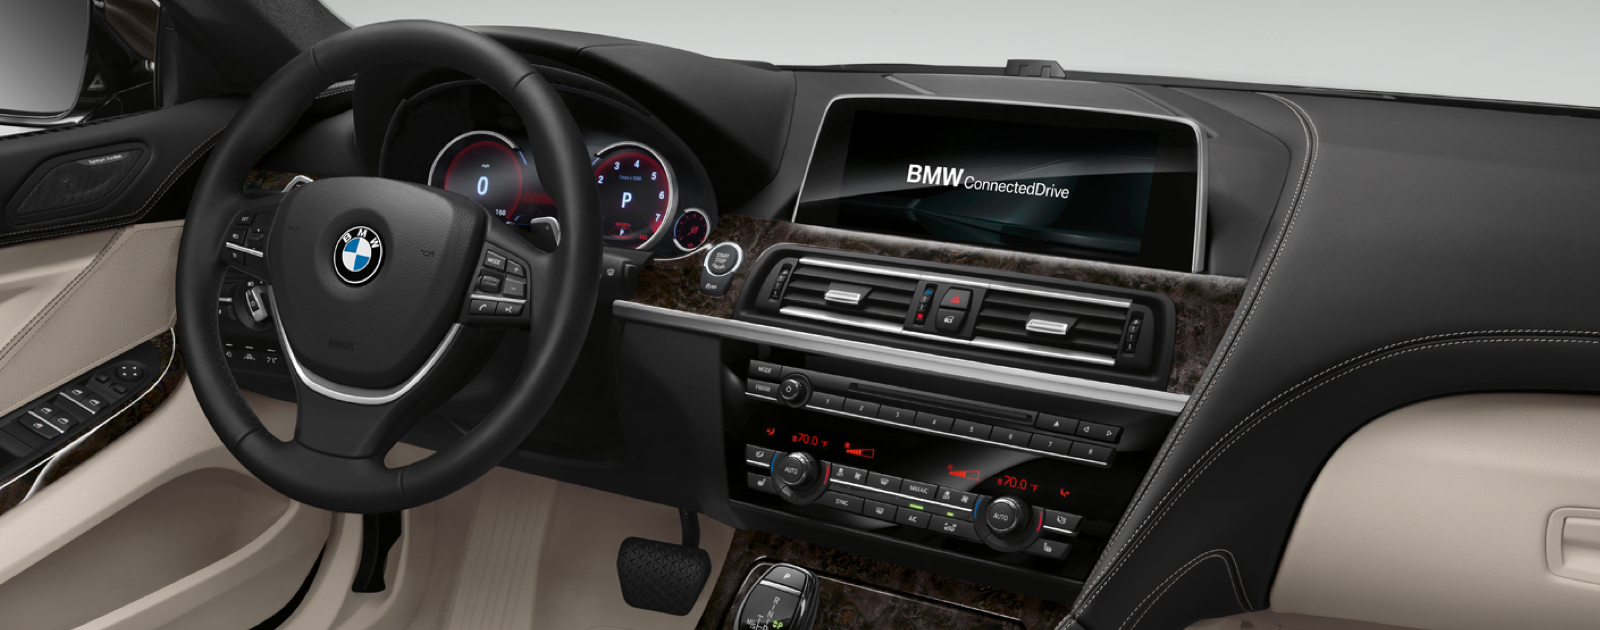 New bmw 6 series interior features